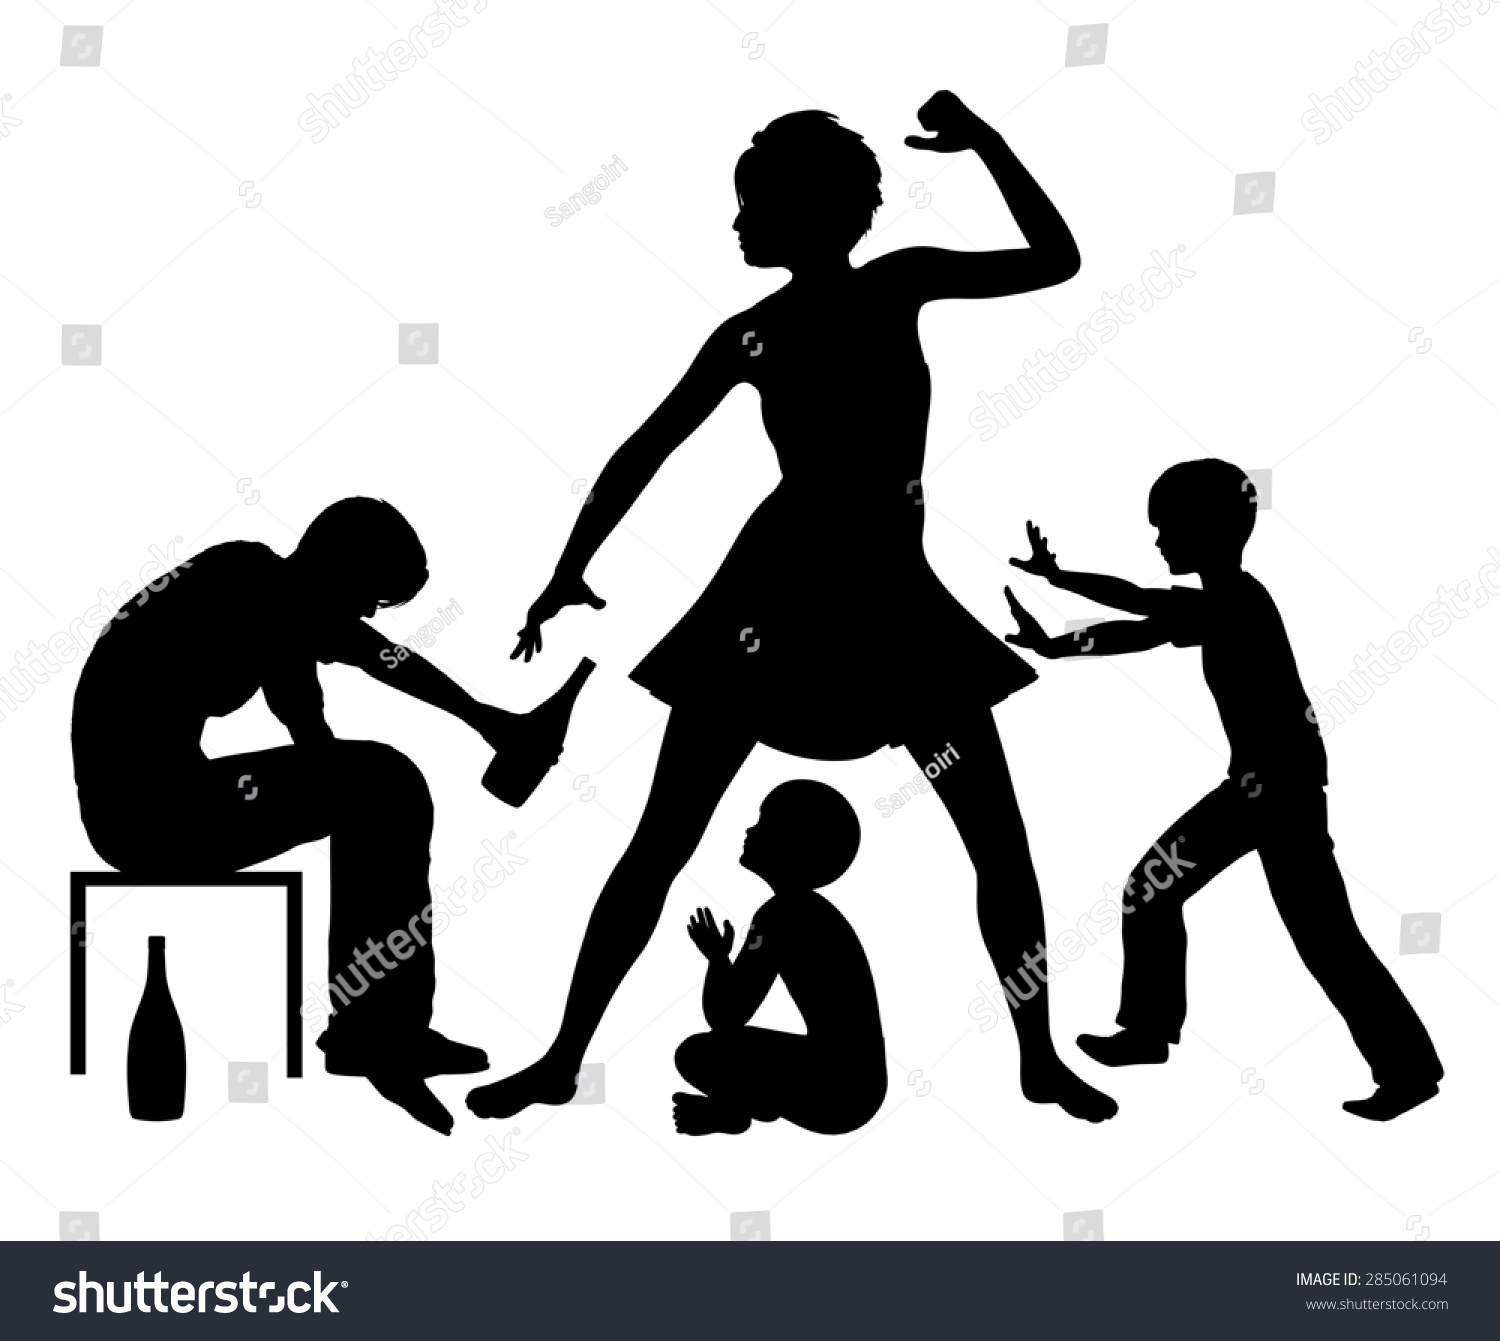 """domestic violence and family abuse Domestic violence and child abuse are truly """"family violence"""" exposures that create and maintain a vicious cycle — exposed children are more likely to become involved in ipv throughout adolescence and adulthood as both victims and perpetrators."""